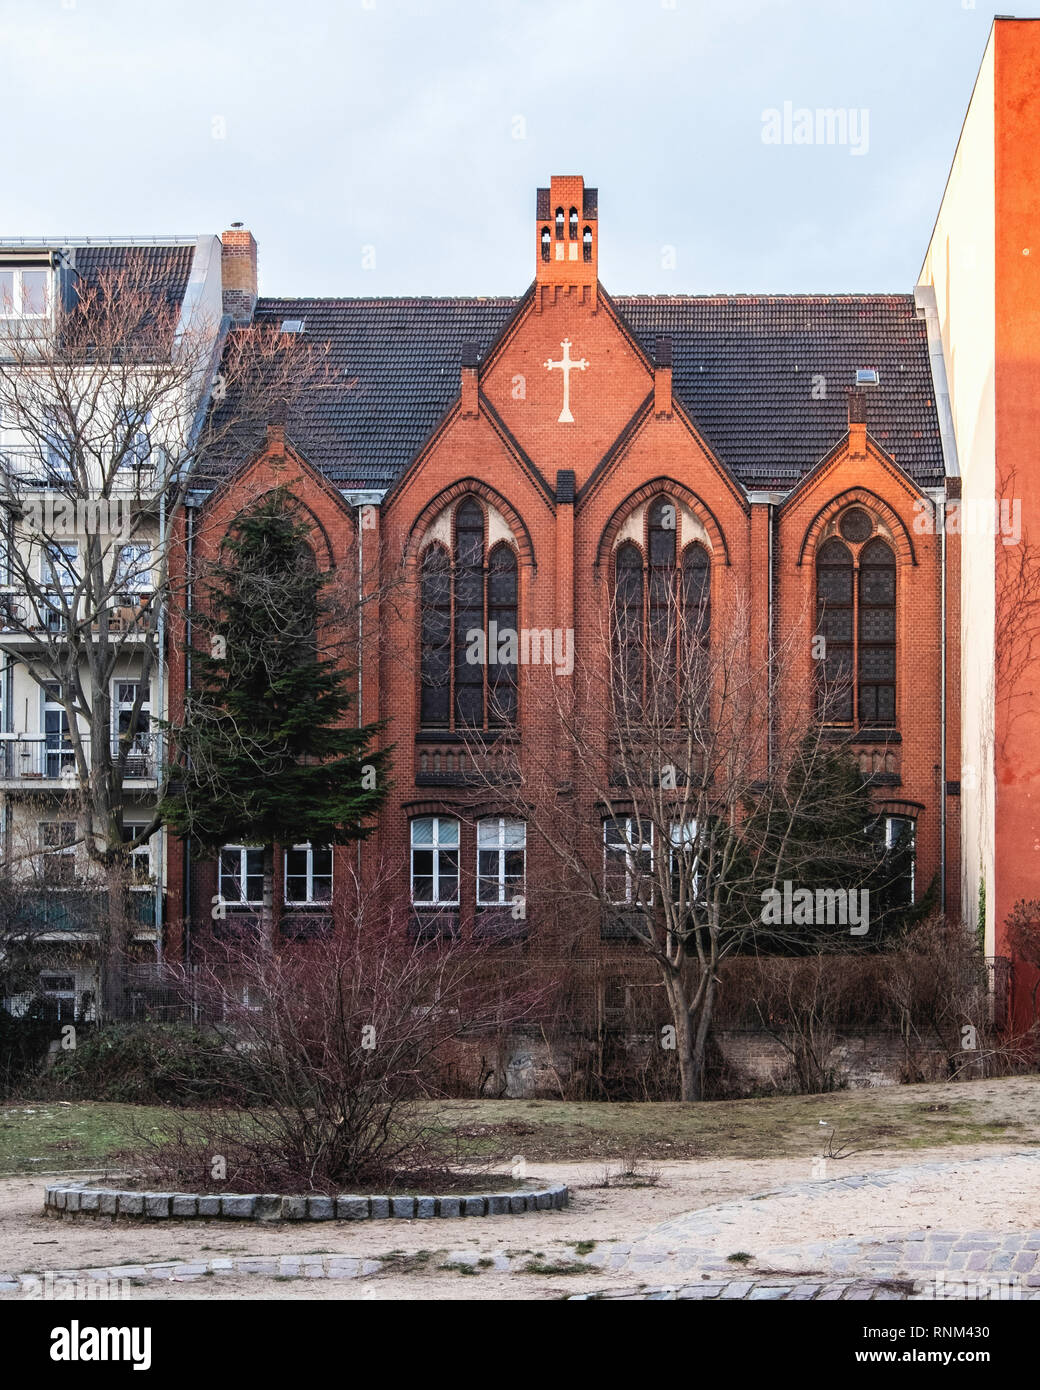 Berlin, Mitte, Church of the Redeemer Protestant-Methodist, designed in 1905  by Carl Breuer. Historic listed North German Brick Gothic style building - Stock Image